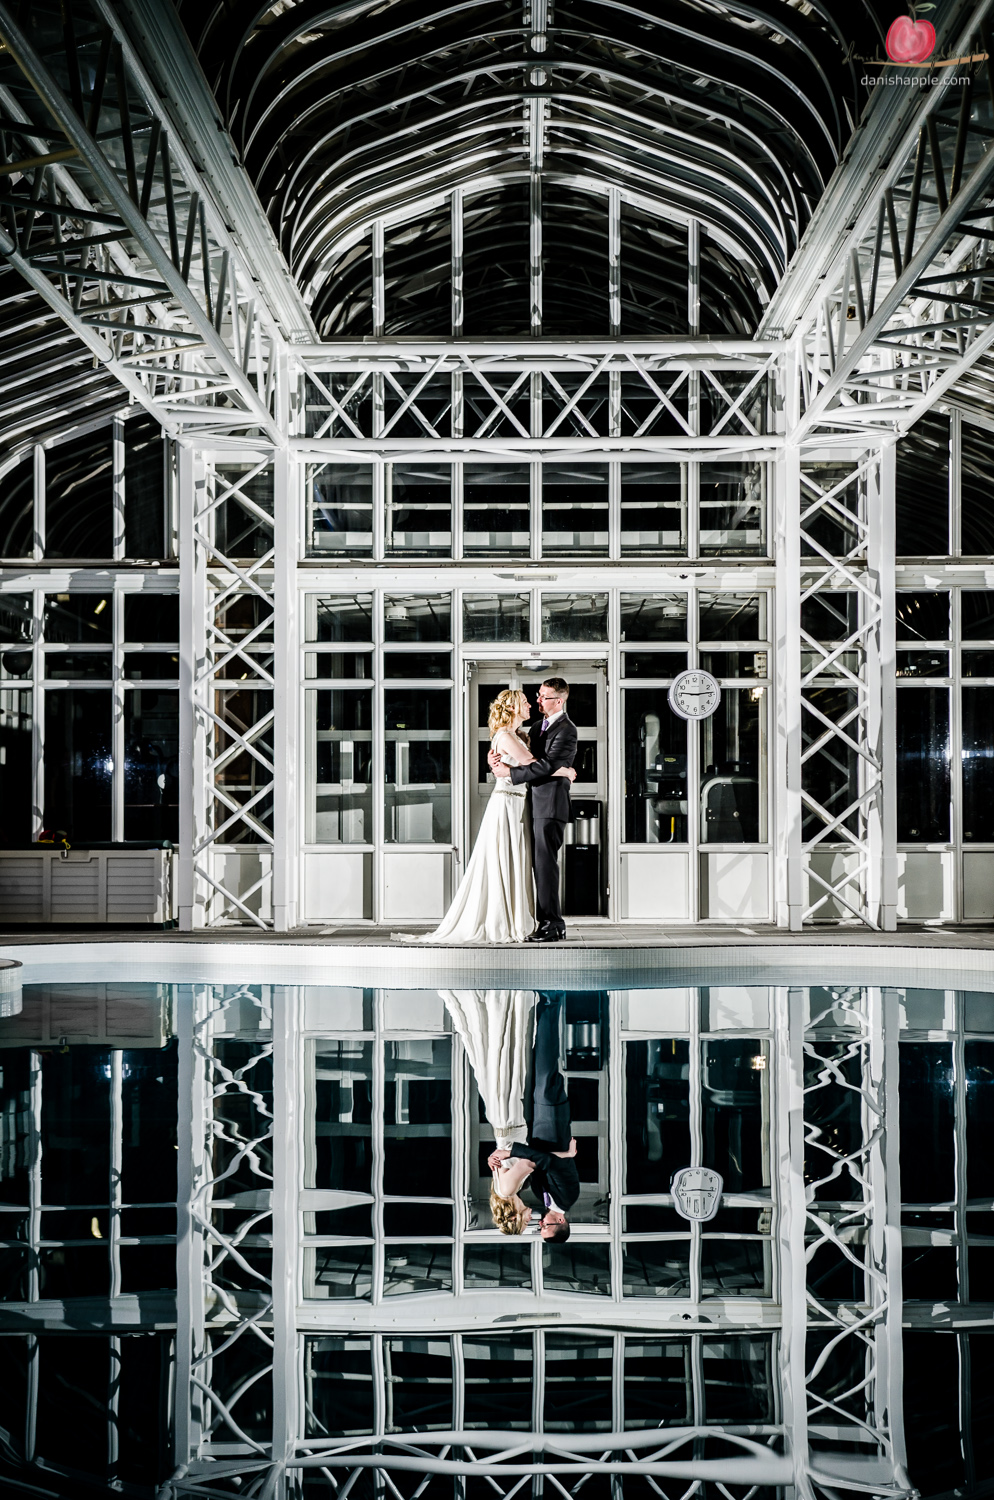 Reflection of bride and groom in swimming pool